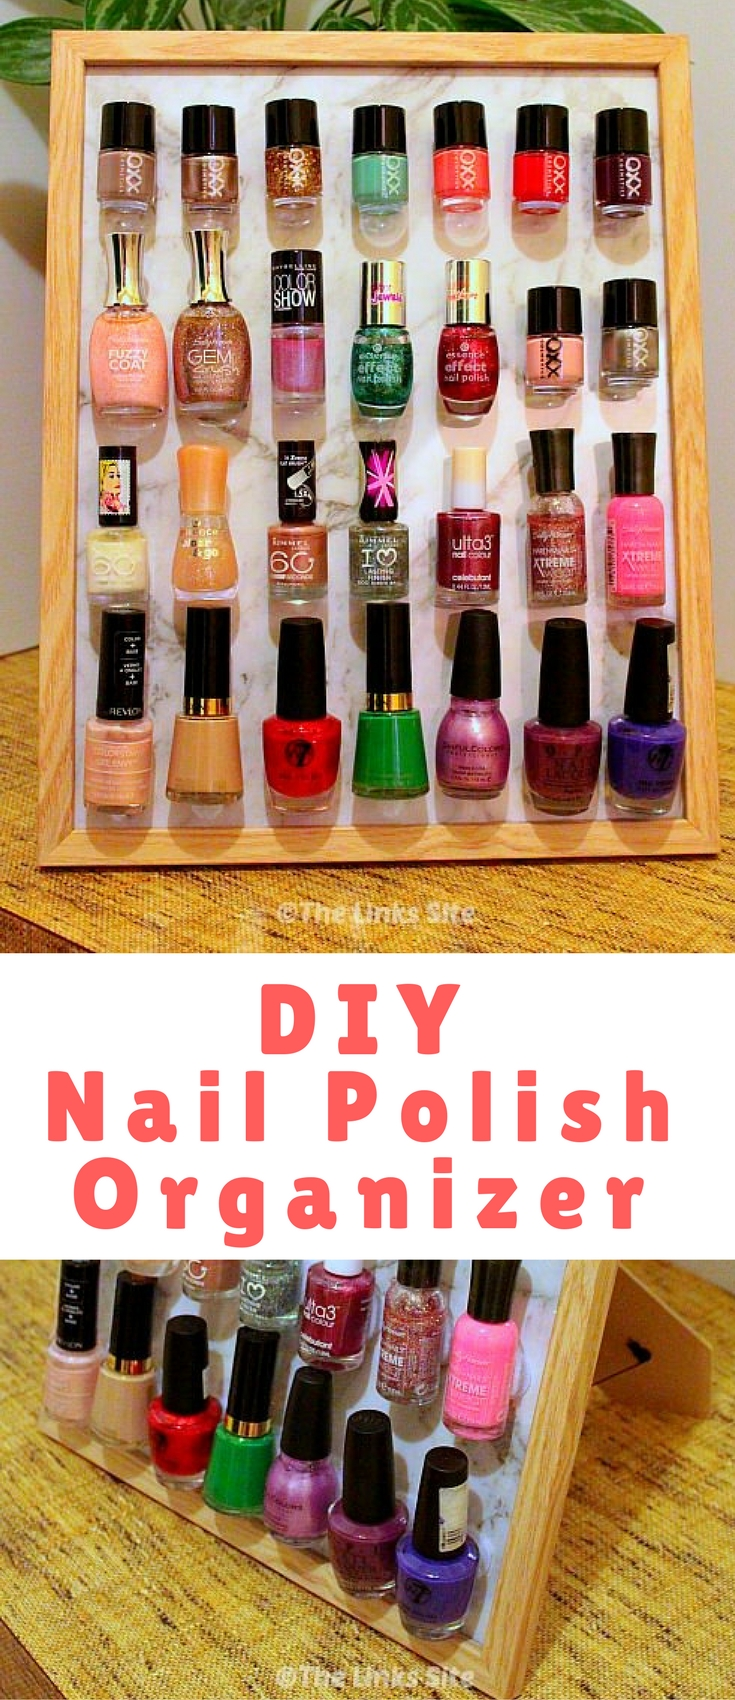 Lean how to use a photo frame to display your nail polish collection with this cute DIY Nail Polish Organizer. You won't believe how quick and easy it is to make!